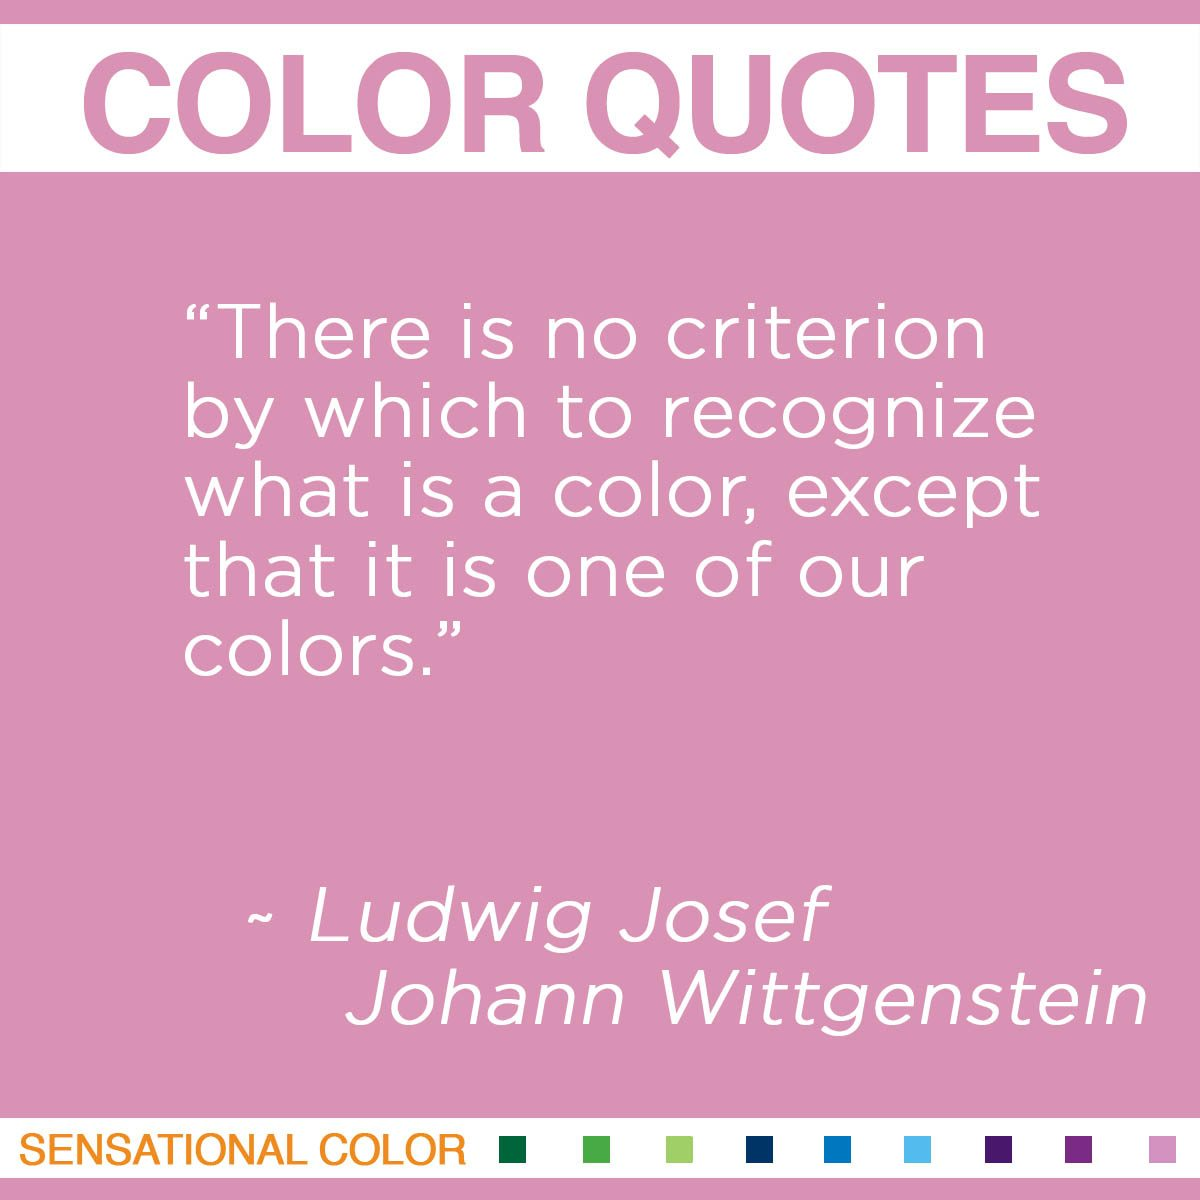 """There is no criterion by which to recognize what is a color, except that it is one of our colors."" - Ludwig Josef Johann Wittgenstein"